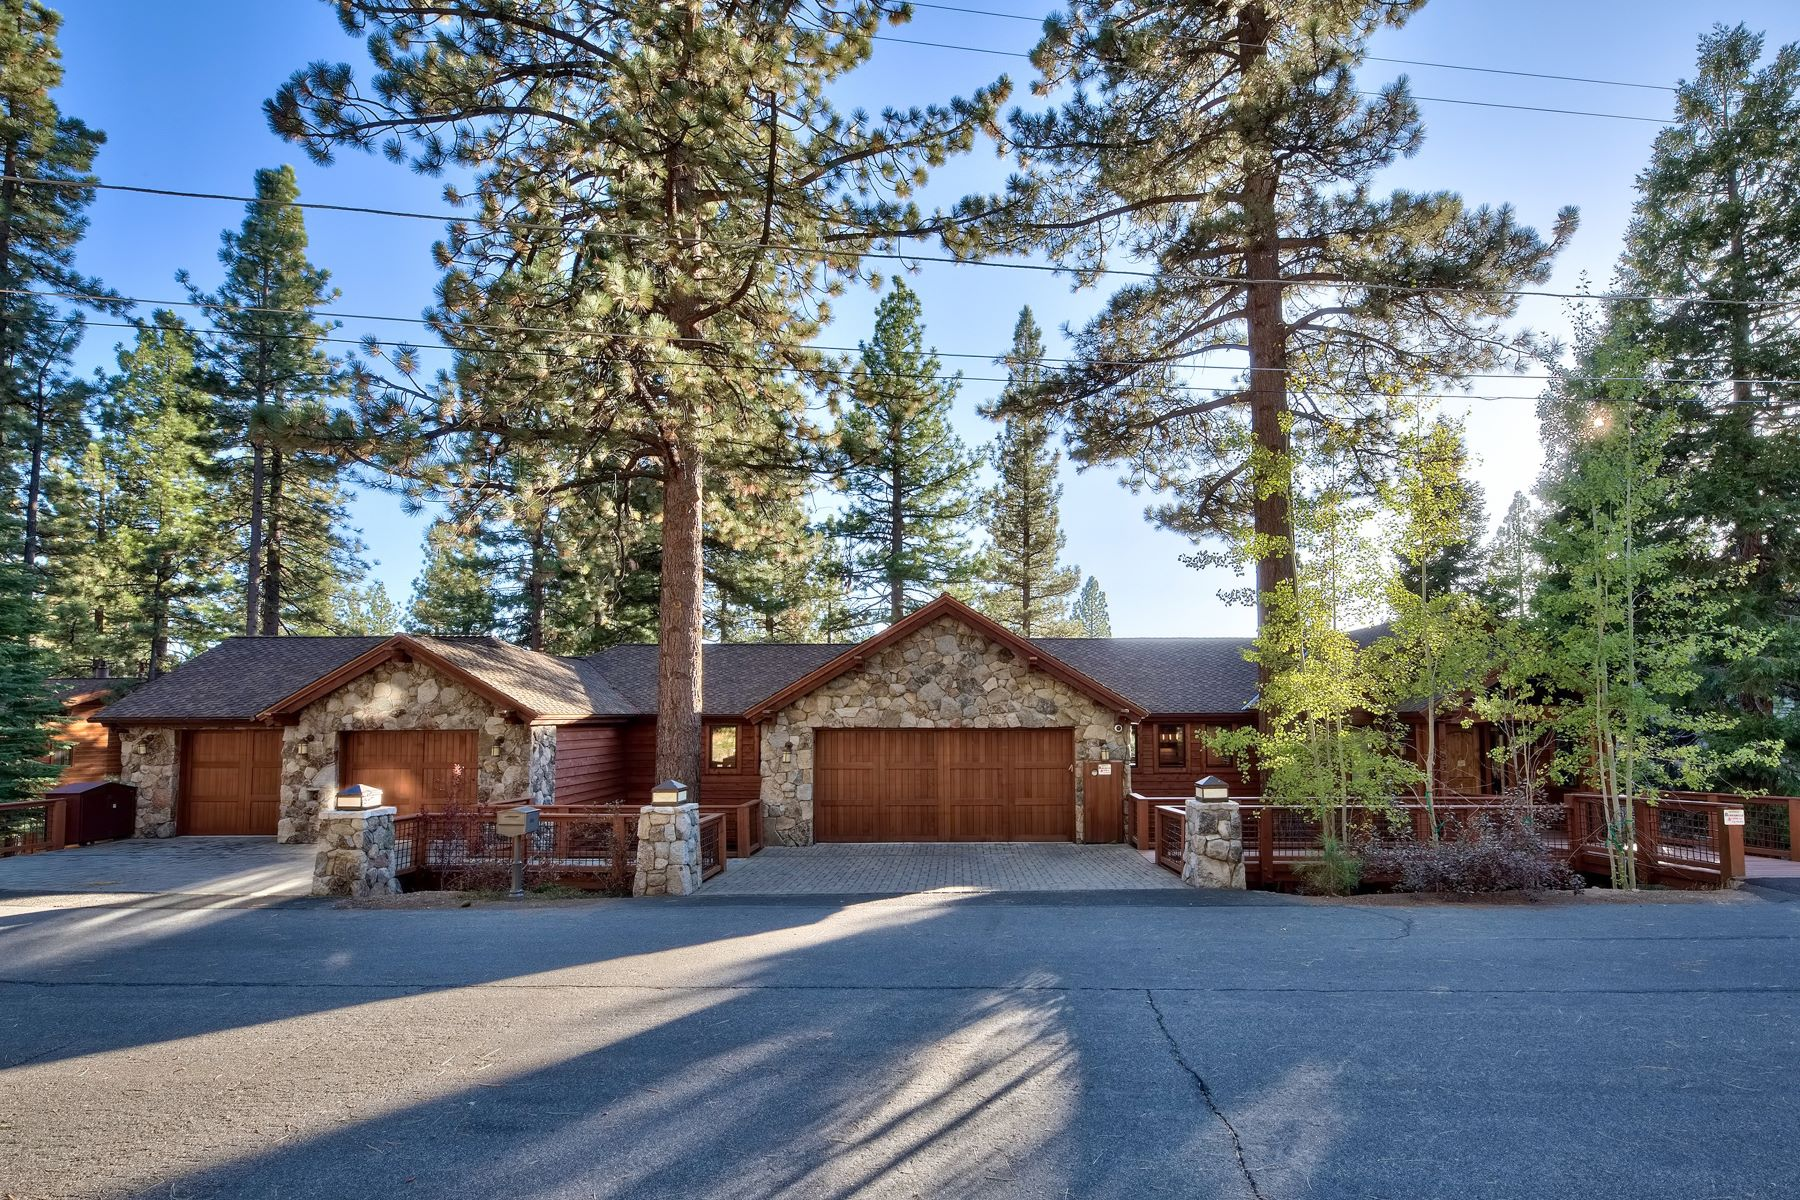 Single Family Homes for Active at Stunning Lake Tahoe home 383 2nd Tee Drive Incline Village, Nevada 89451 United States